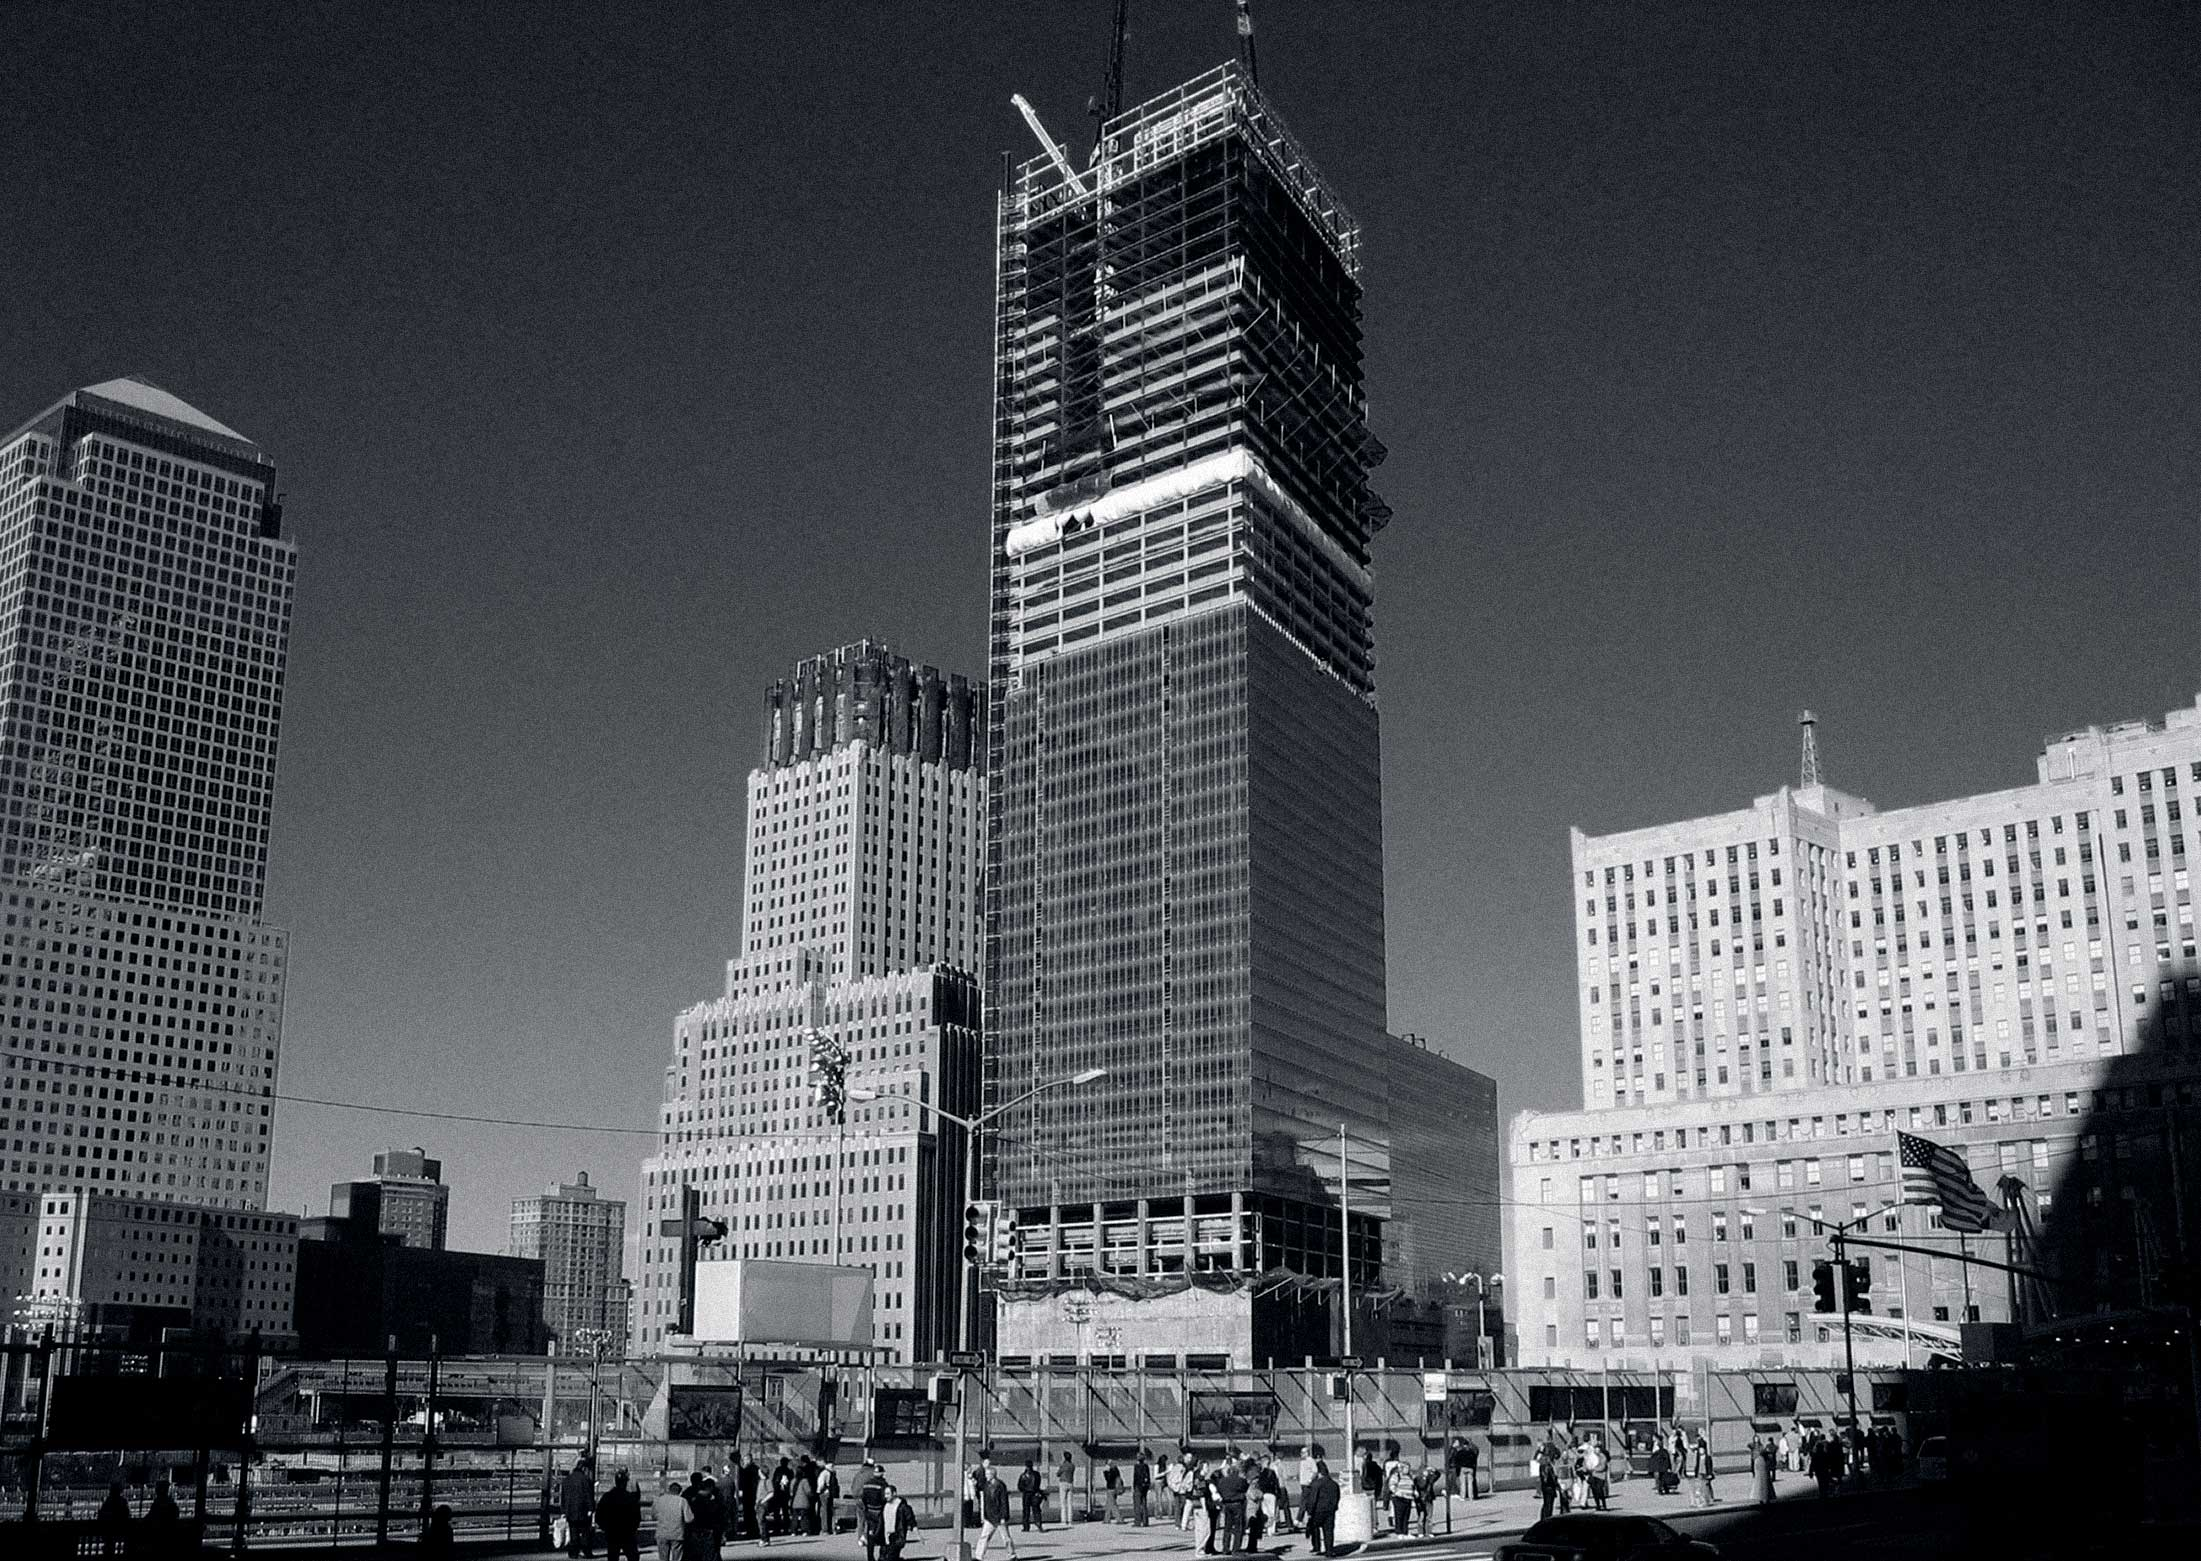 The picture shows the construction site and the shell of the 7 World Trade Center. Here the building is almost half finished.